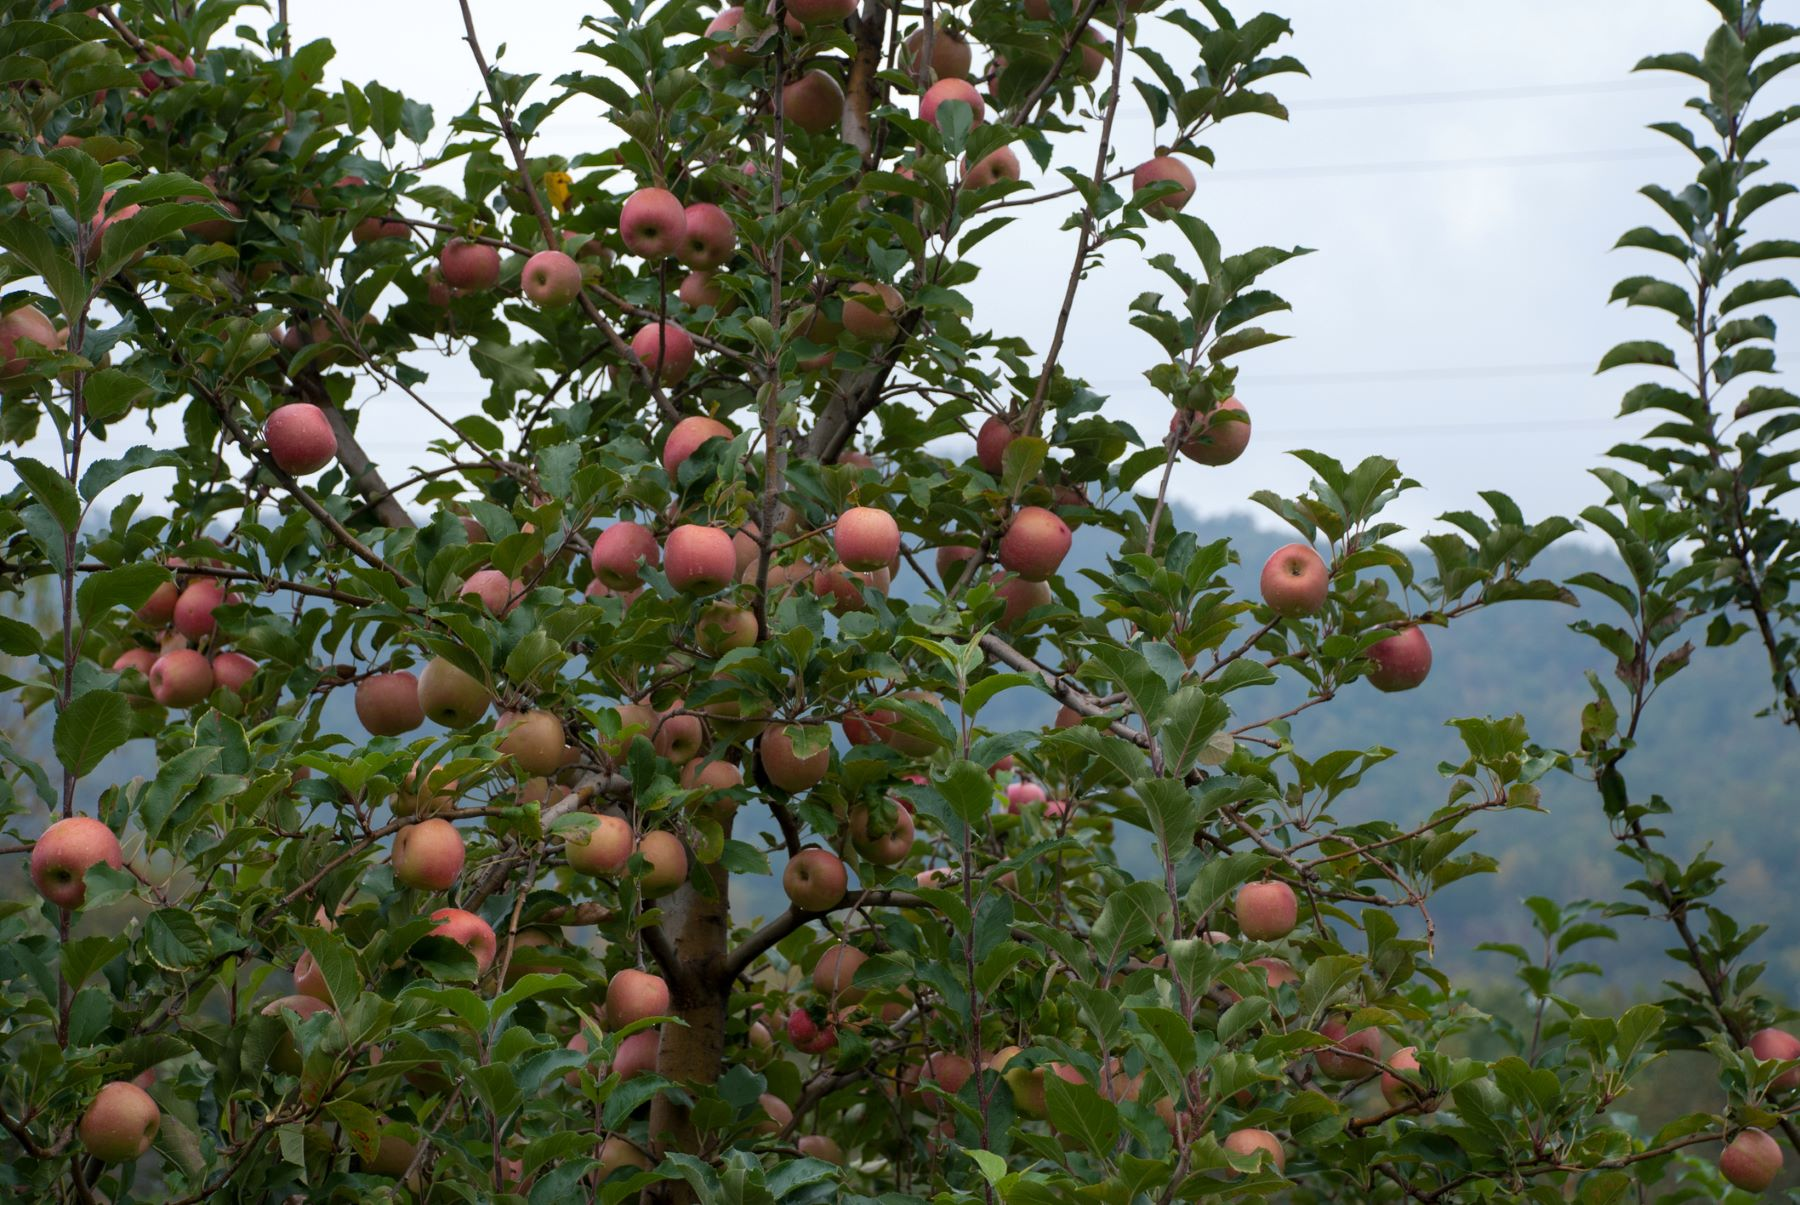 A beautiful apple tree with mountain views in the background at a Hendersonville, NC, apple orchard.